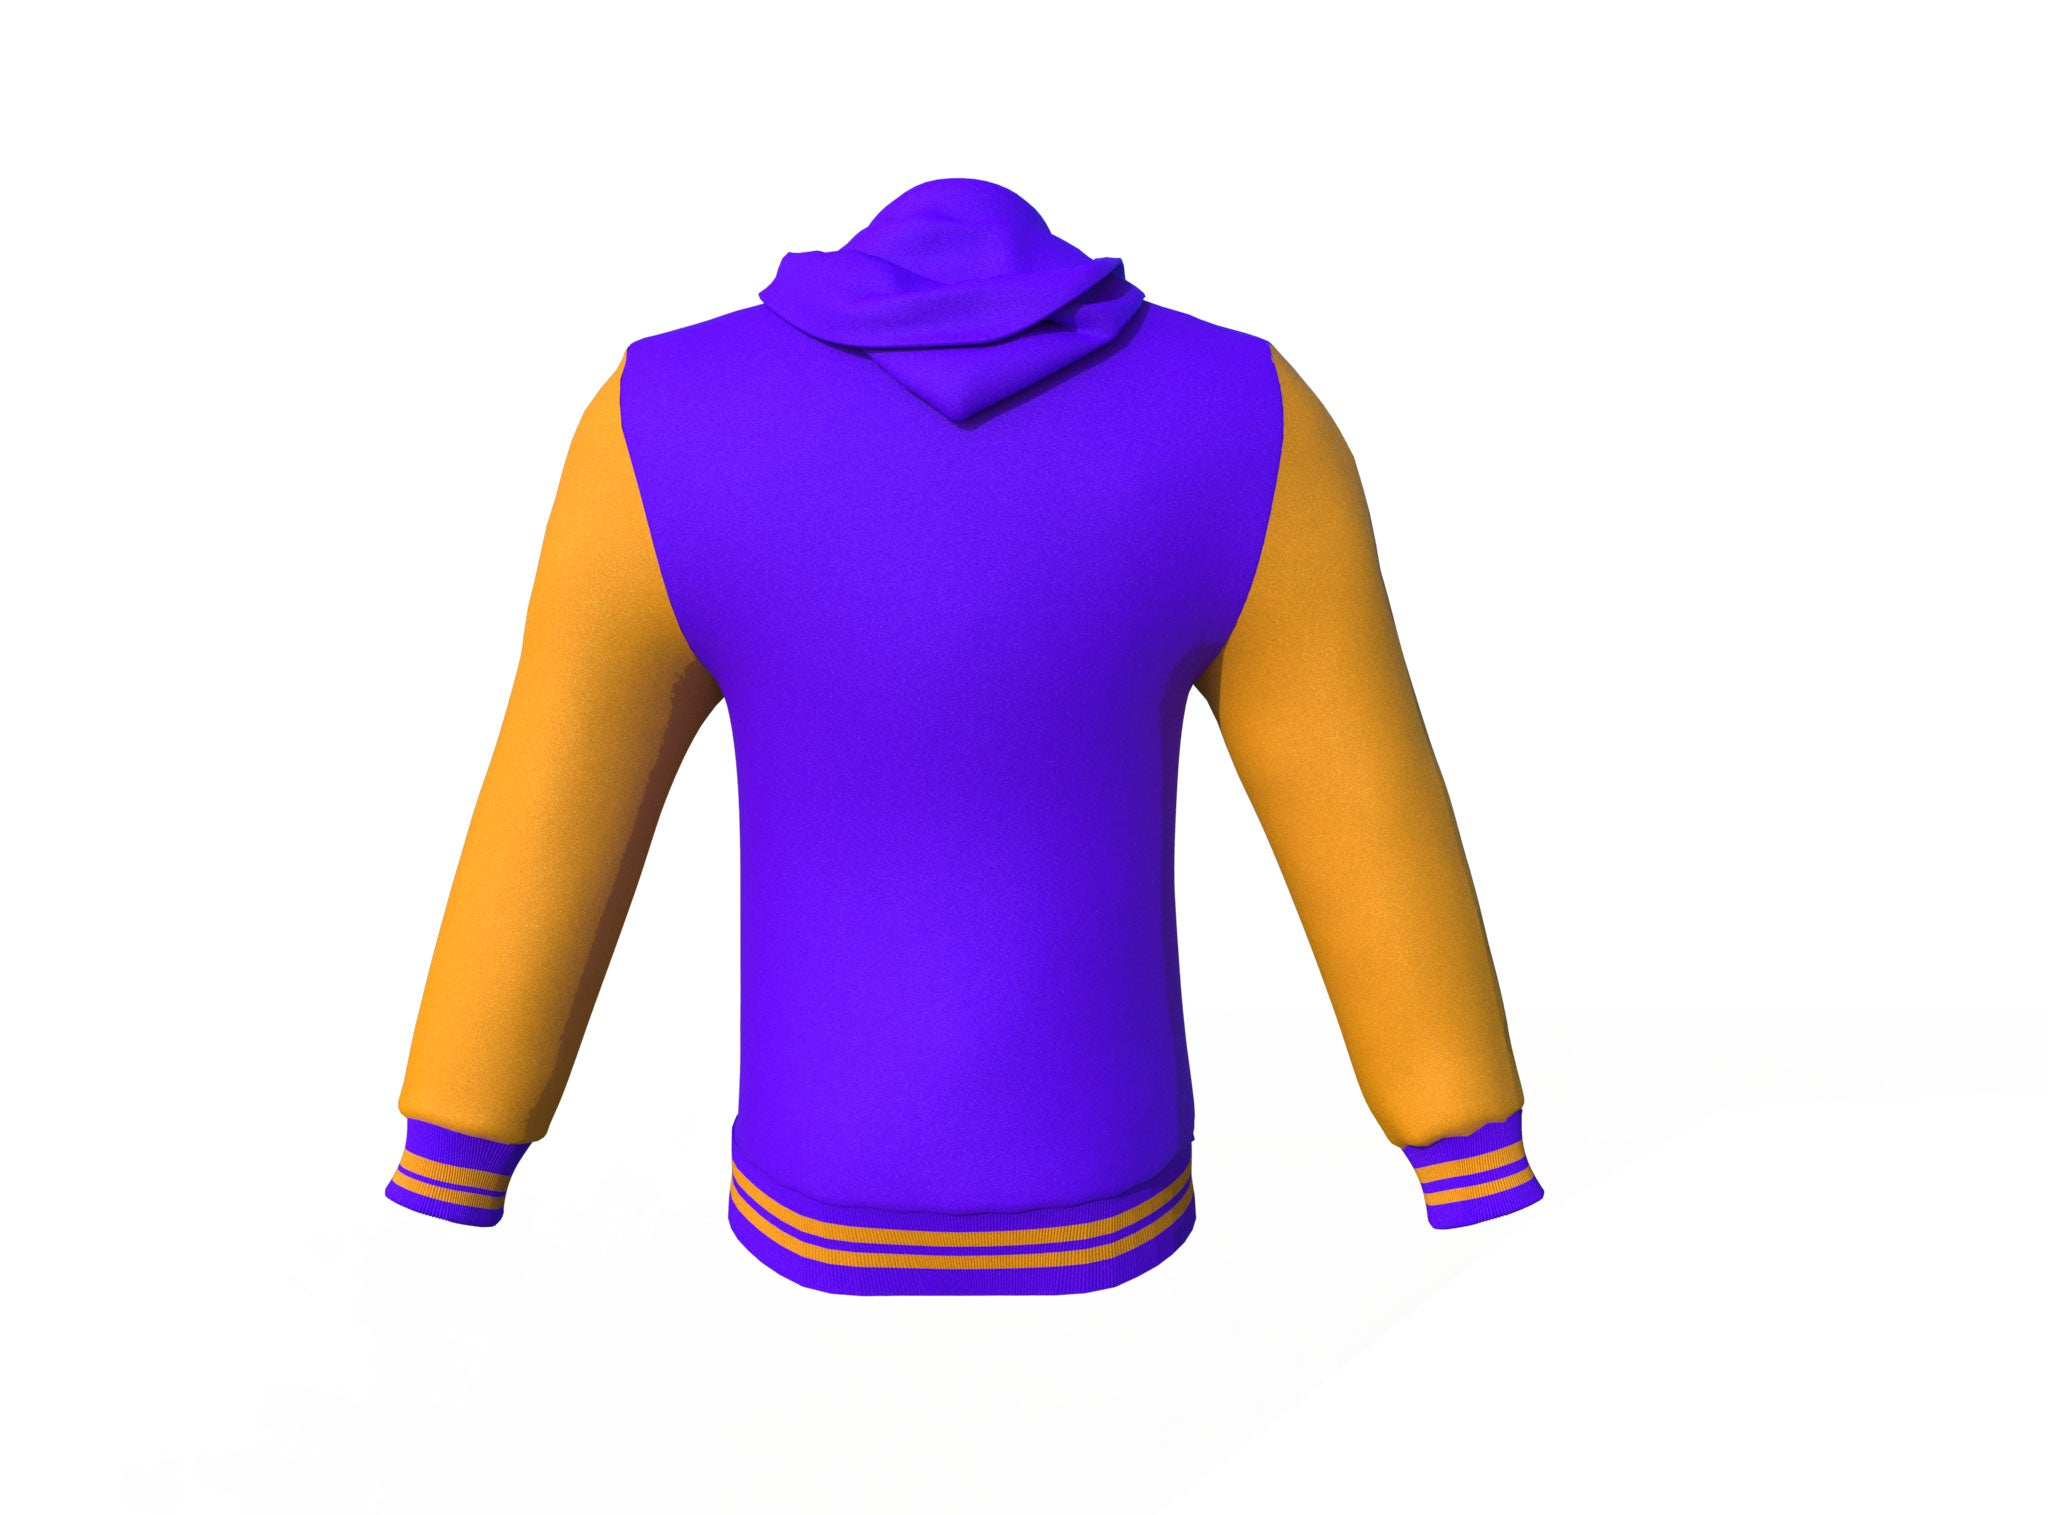 Purple Varsity Letterman Jacket with Gold Sleeves